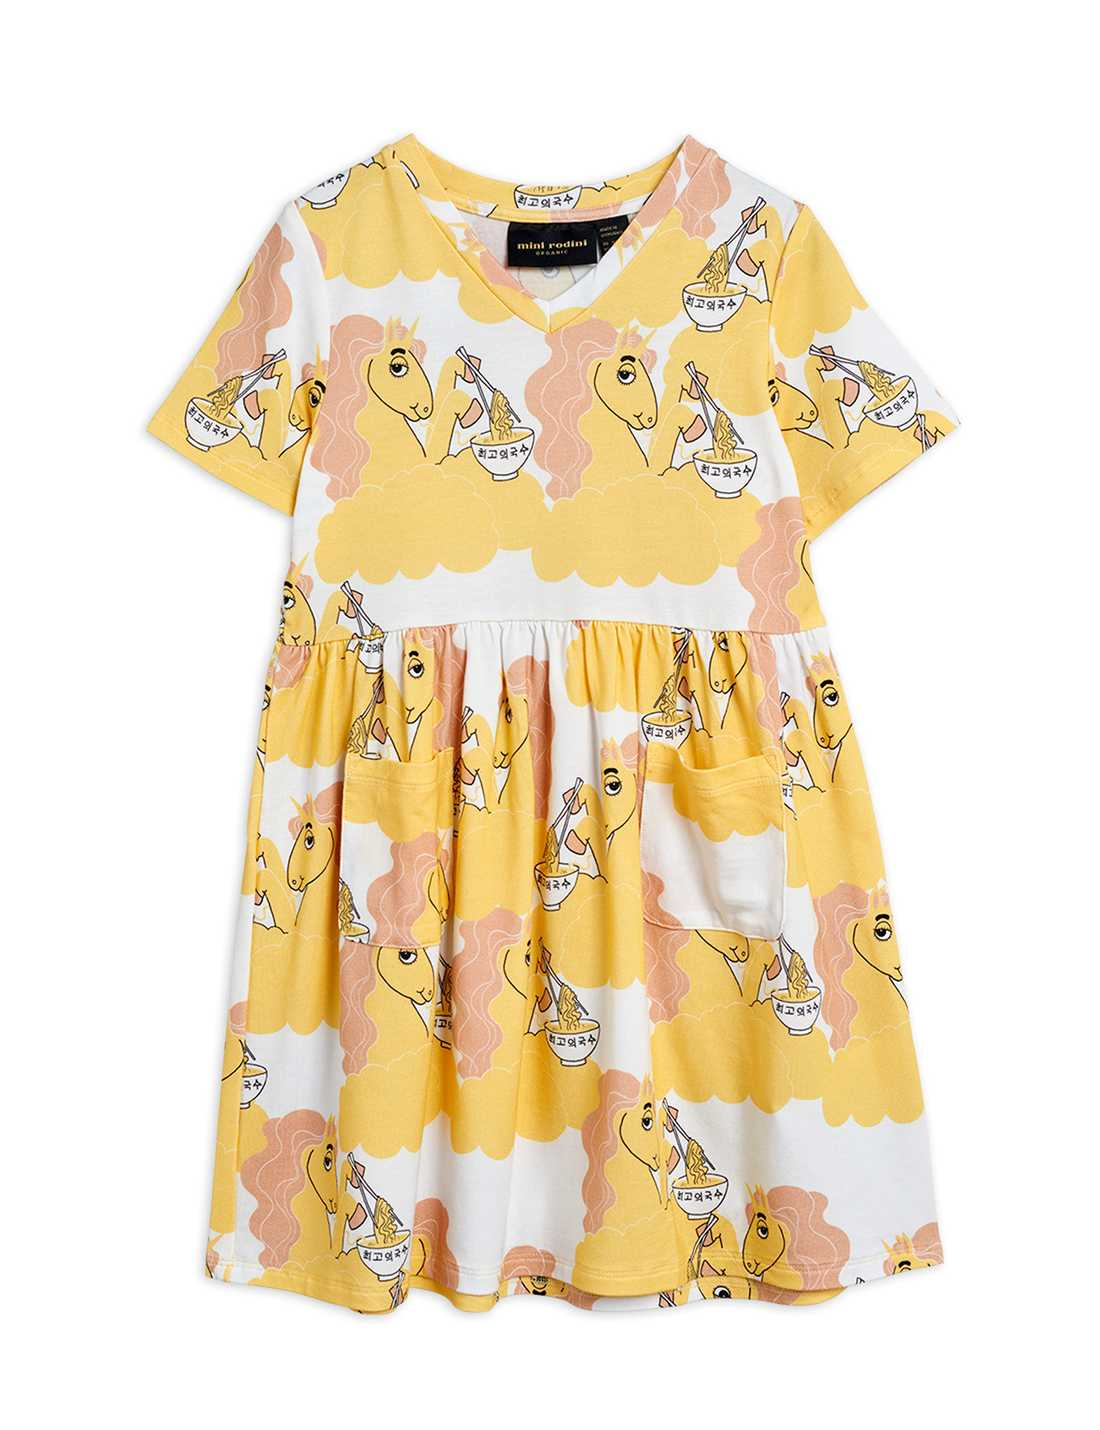 MINI RODINI UNICORN NOODLES SS DRESS YELLOW